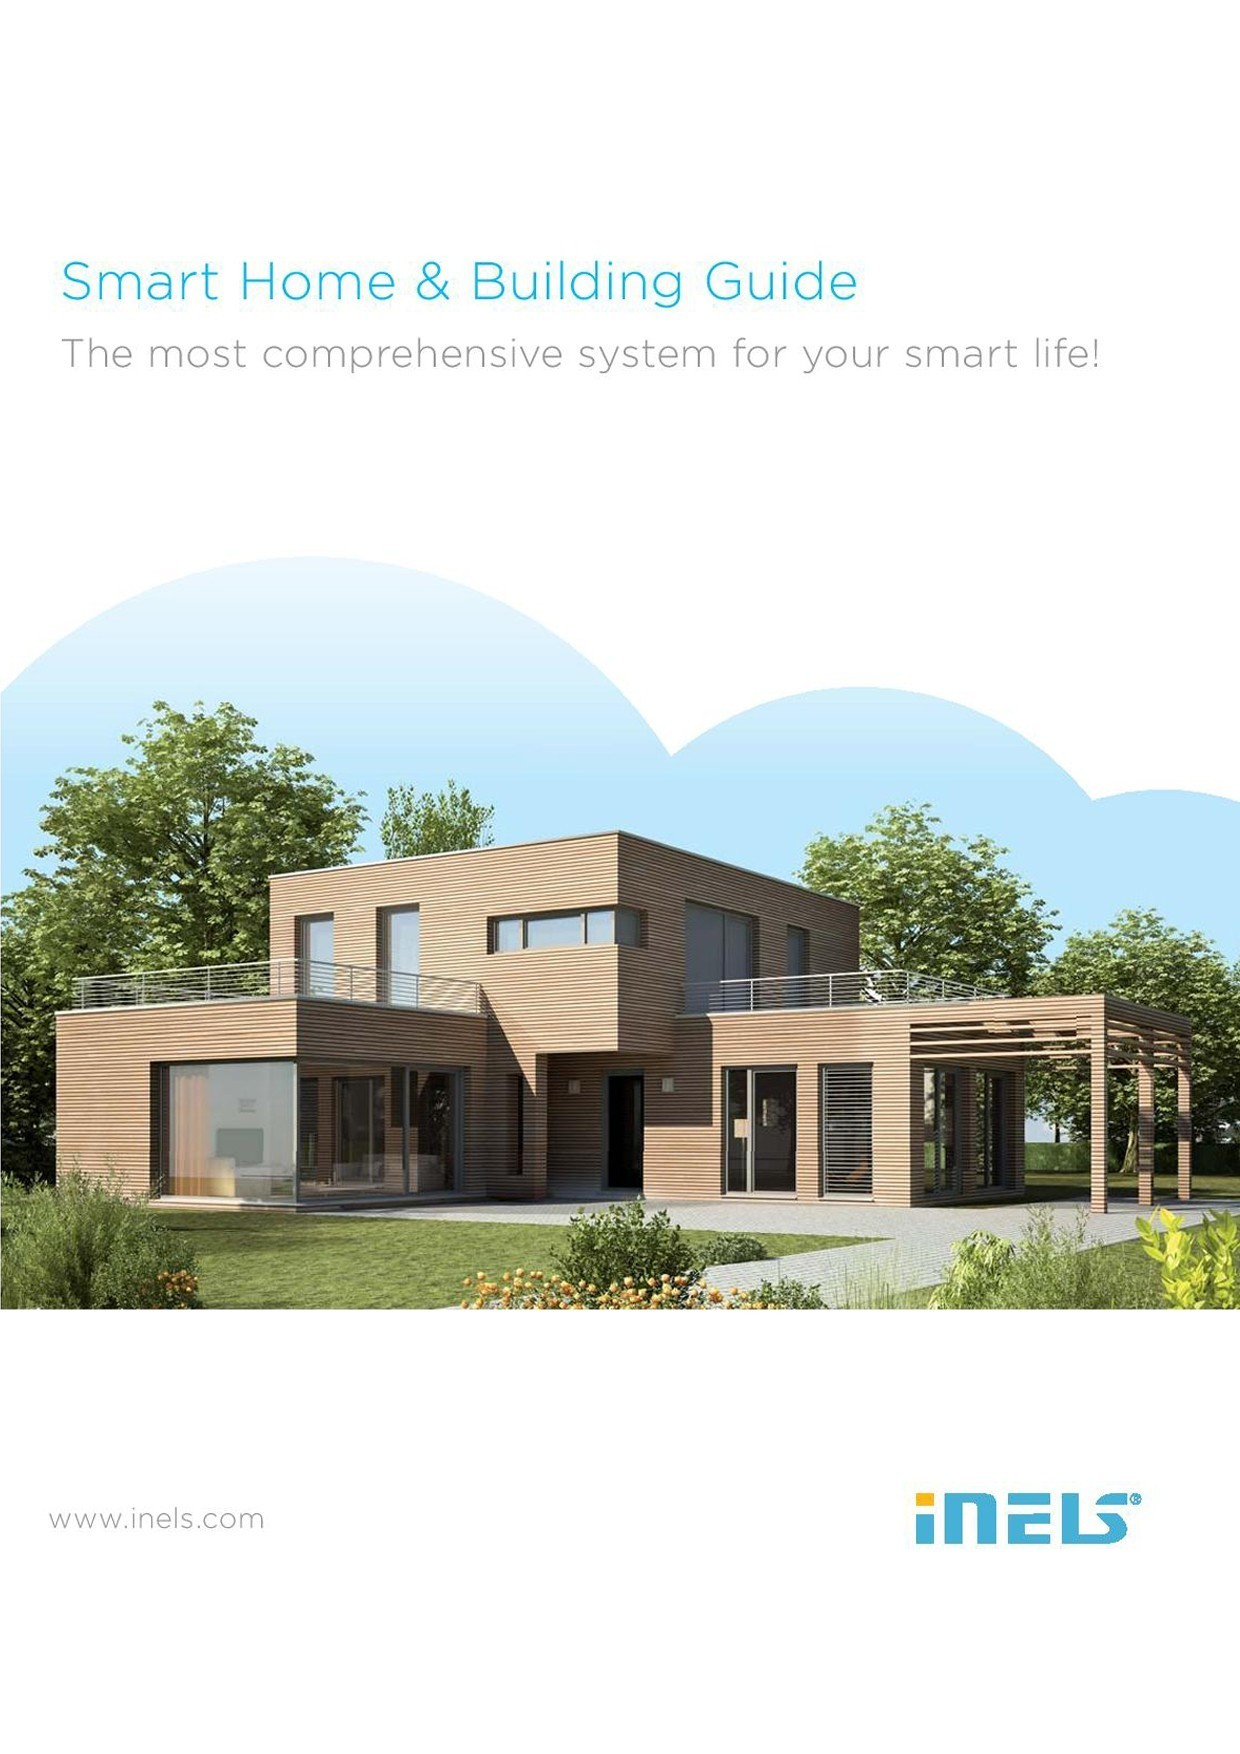 Smart Home & Building Guide preview